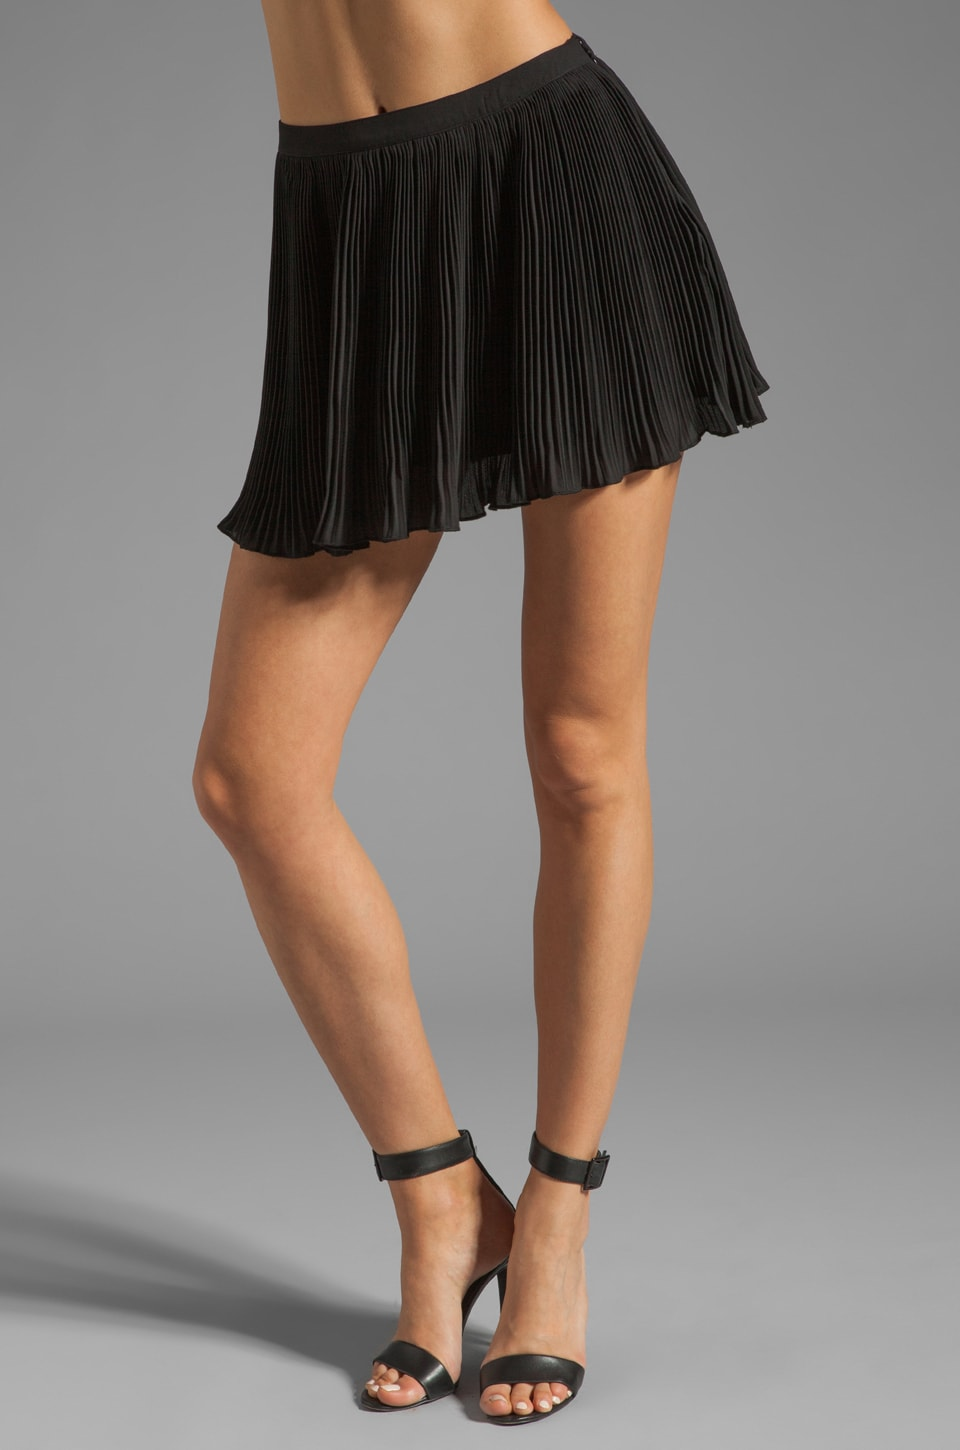 Lovers + Friends x BECAUSE IM ADDICTED Charmed Skirt in Black